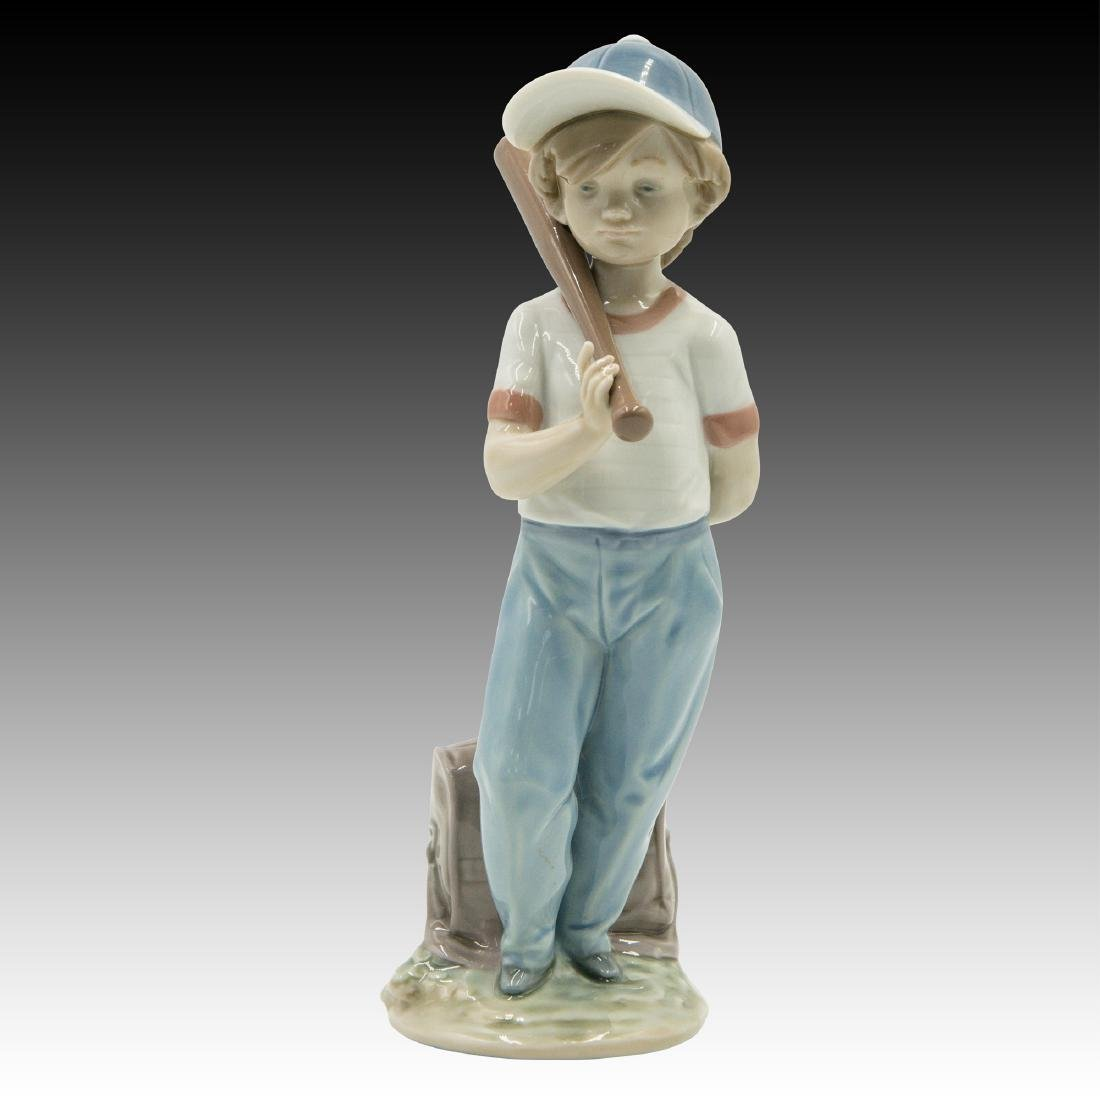 Lladro Can I Play ? Figurine 7610 Retired 1992